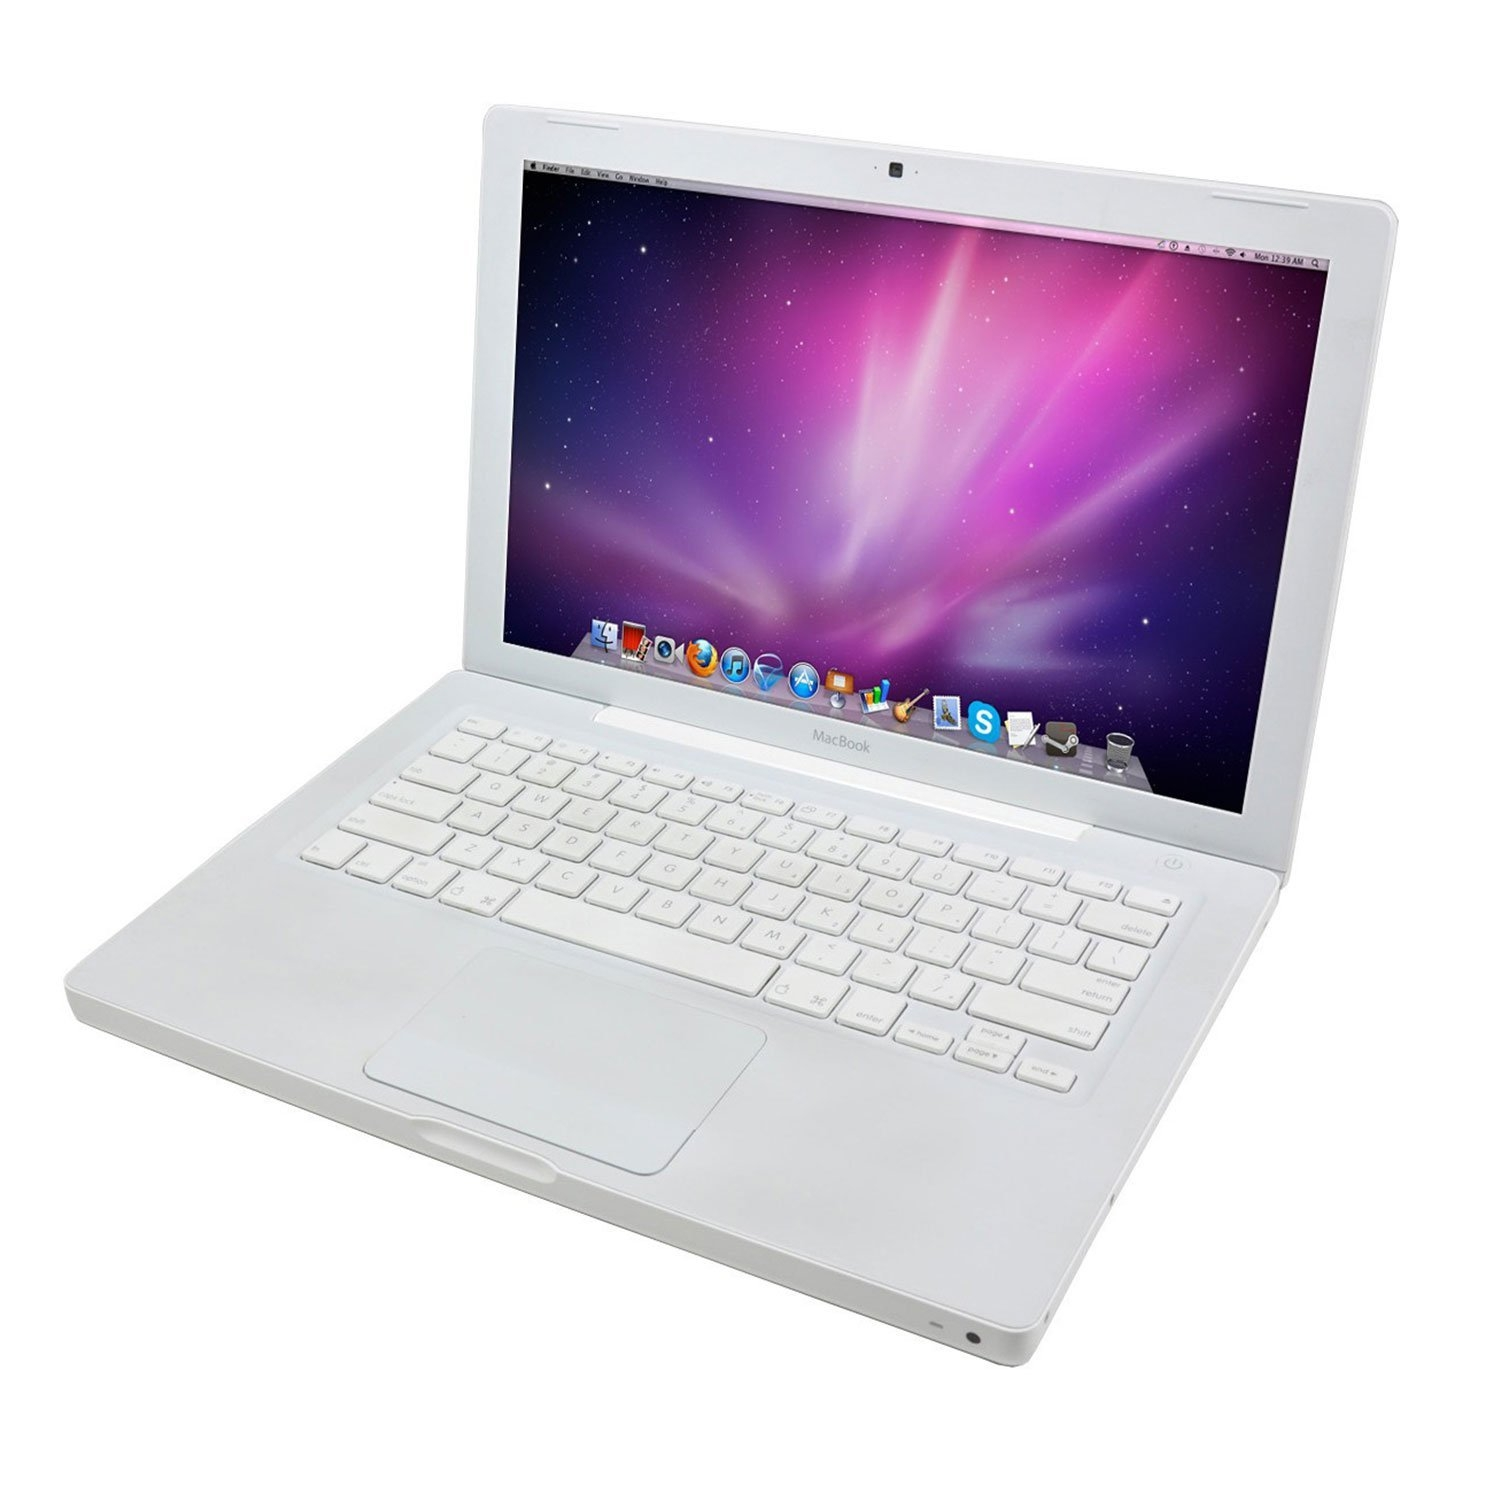 Apple MacBook white 2.2 GHz